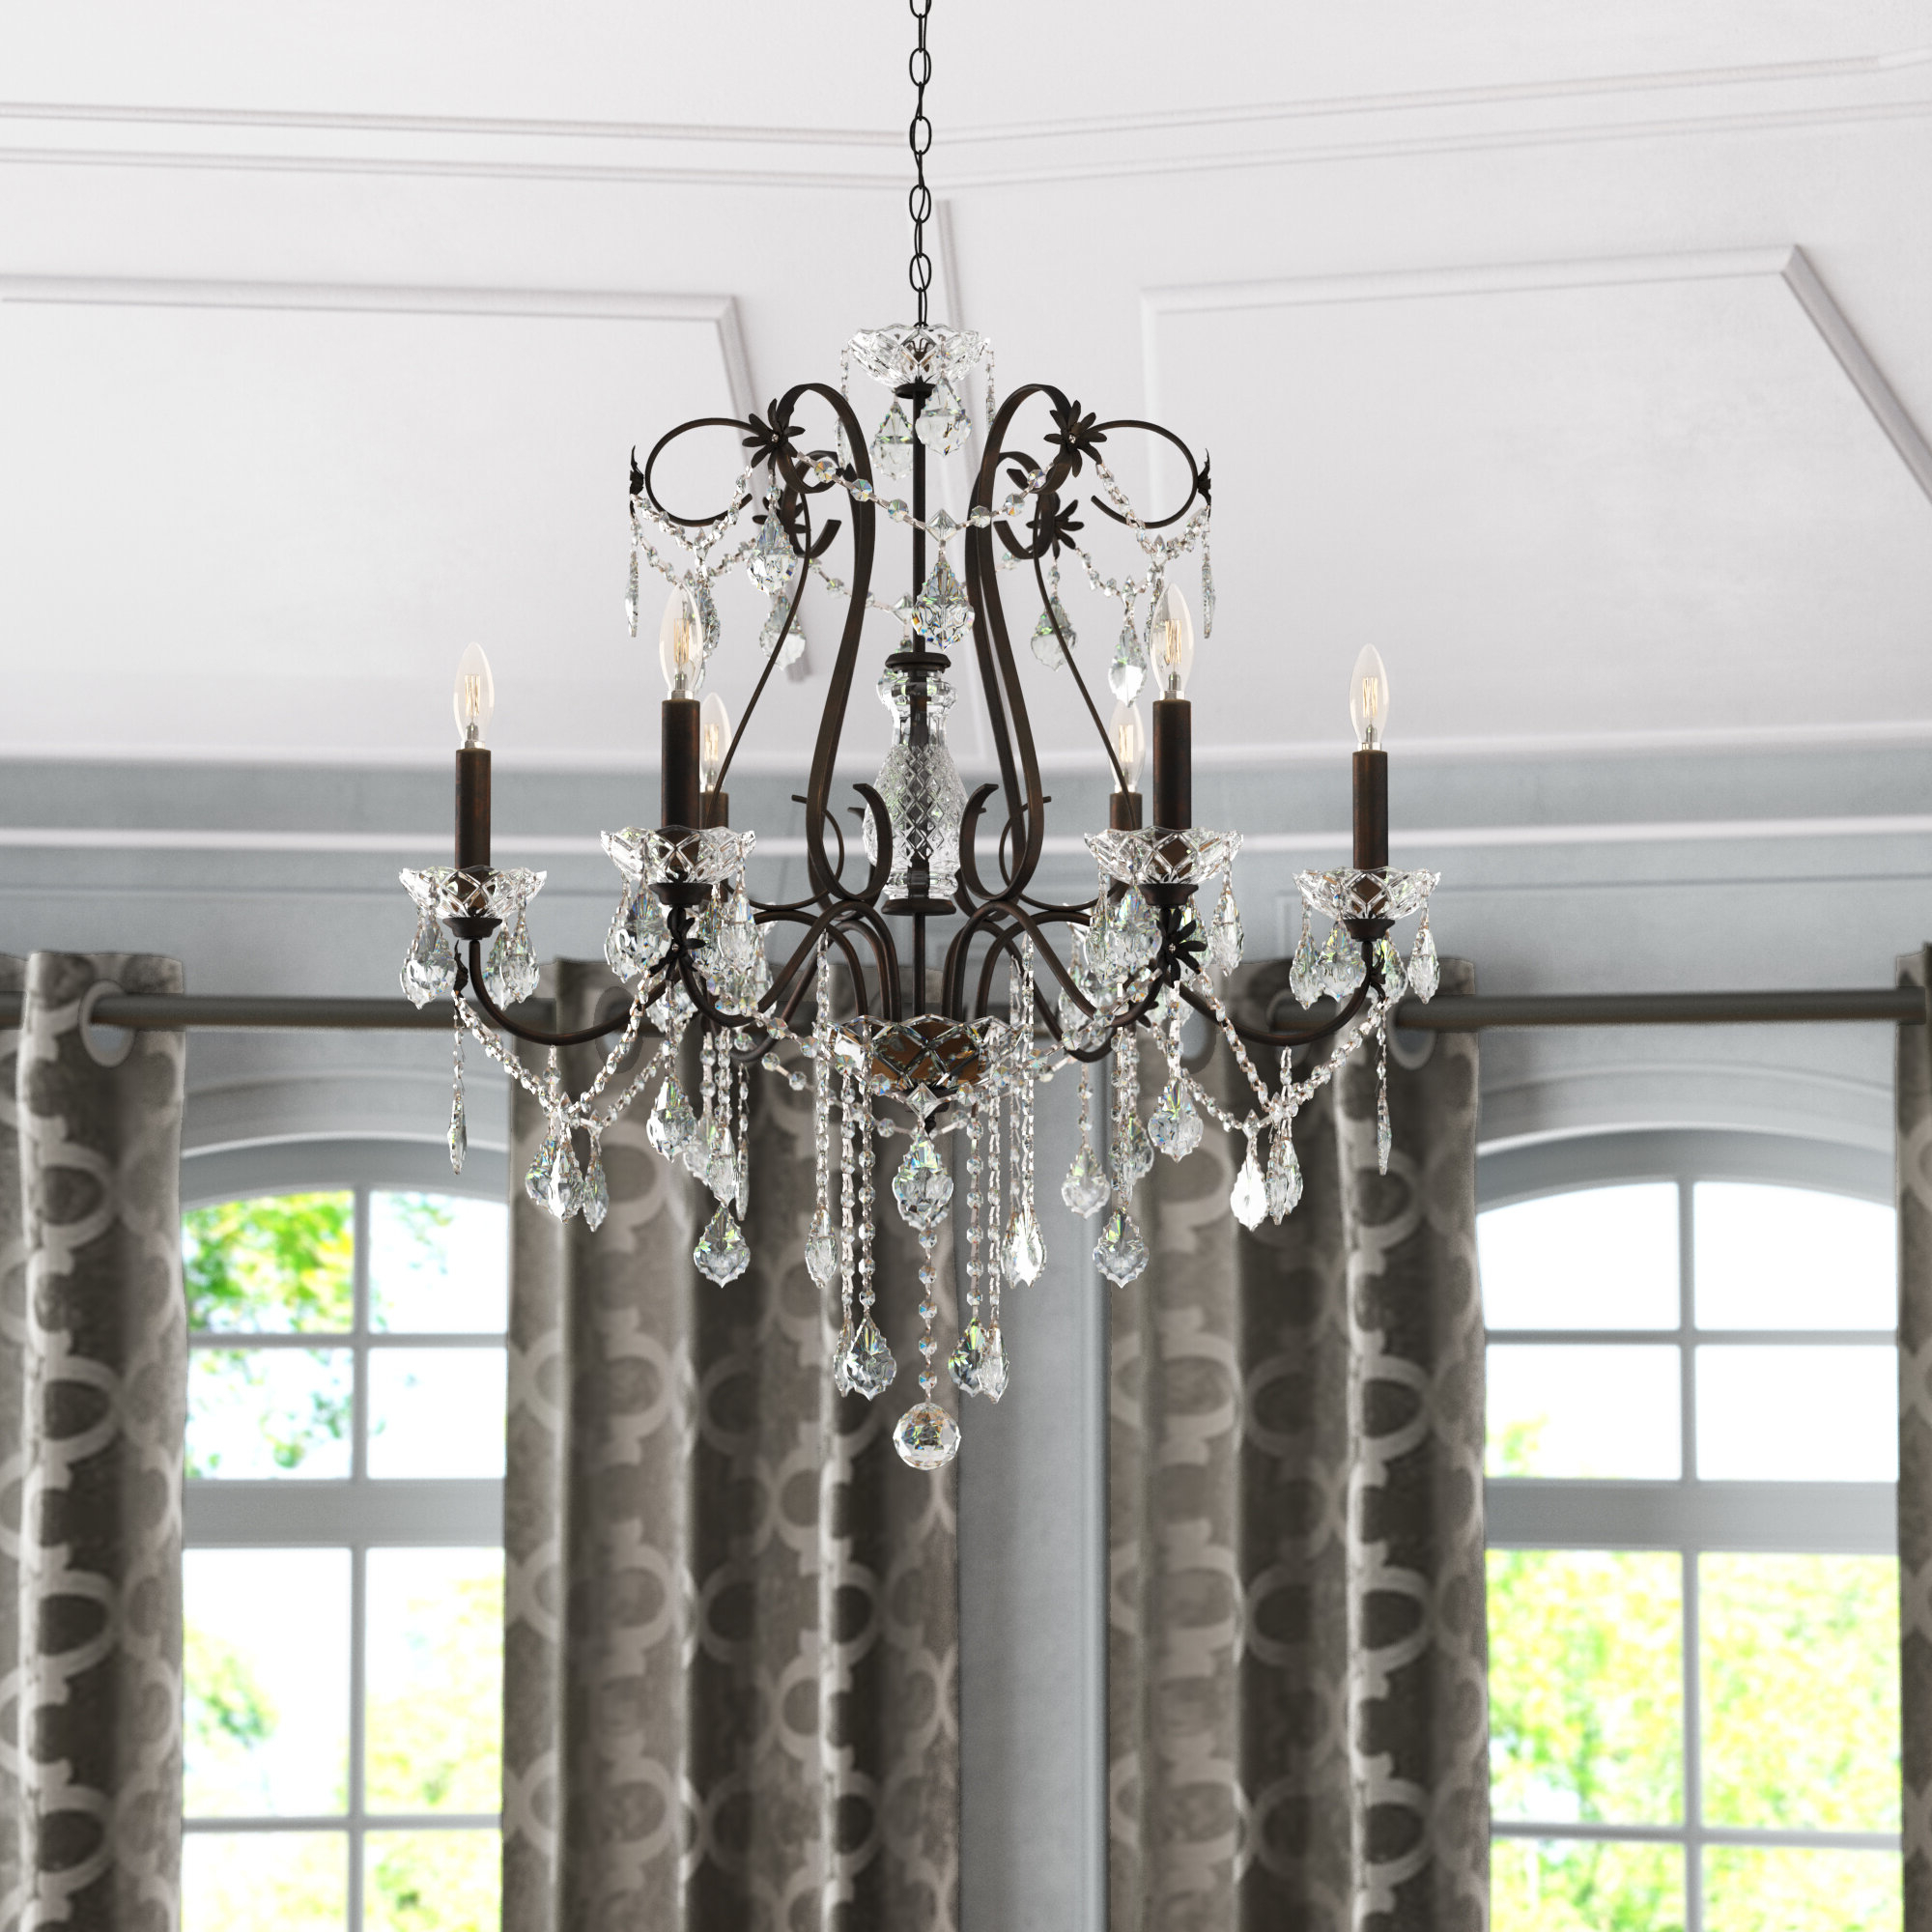 Hesse 5 Light Candle Style Chandeliers In Favorite Thao 6 Light Candle Style Chandelier (Gallery 18 of 20)